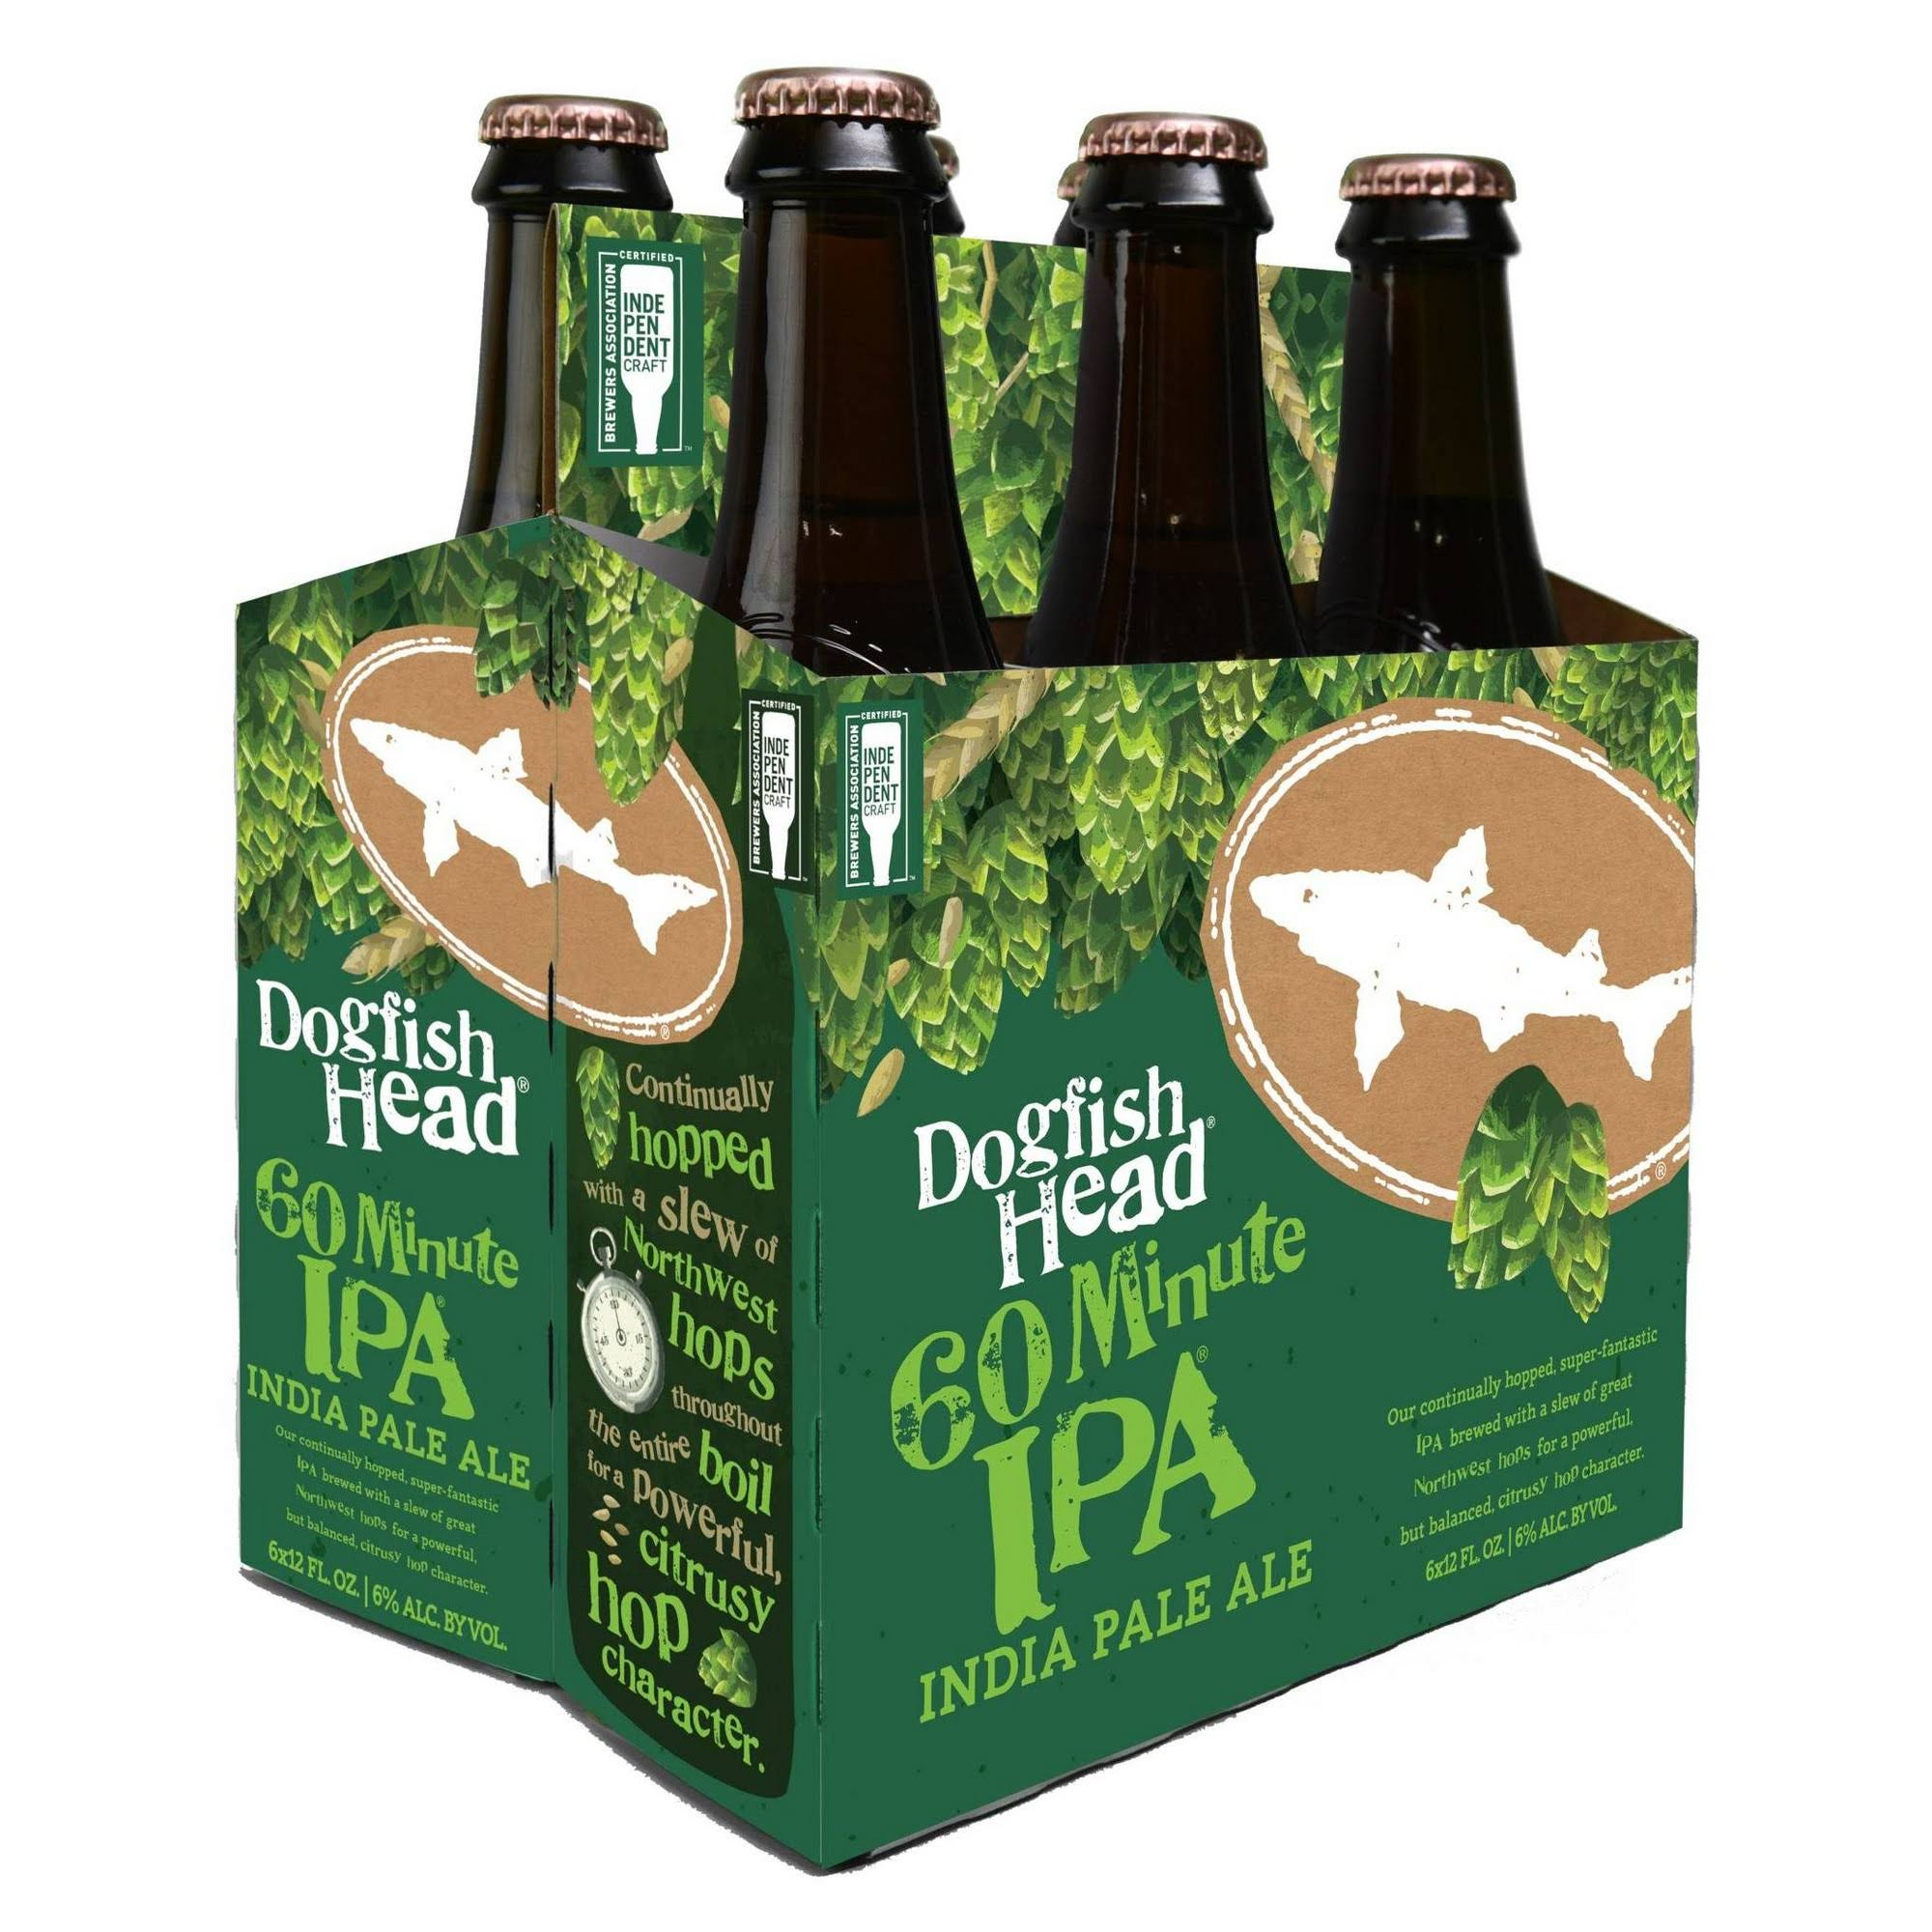 Dogfish Head Beer, IPA, 60 Minute - 6 - 12 fl oz cans.